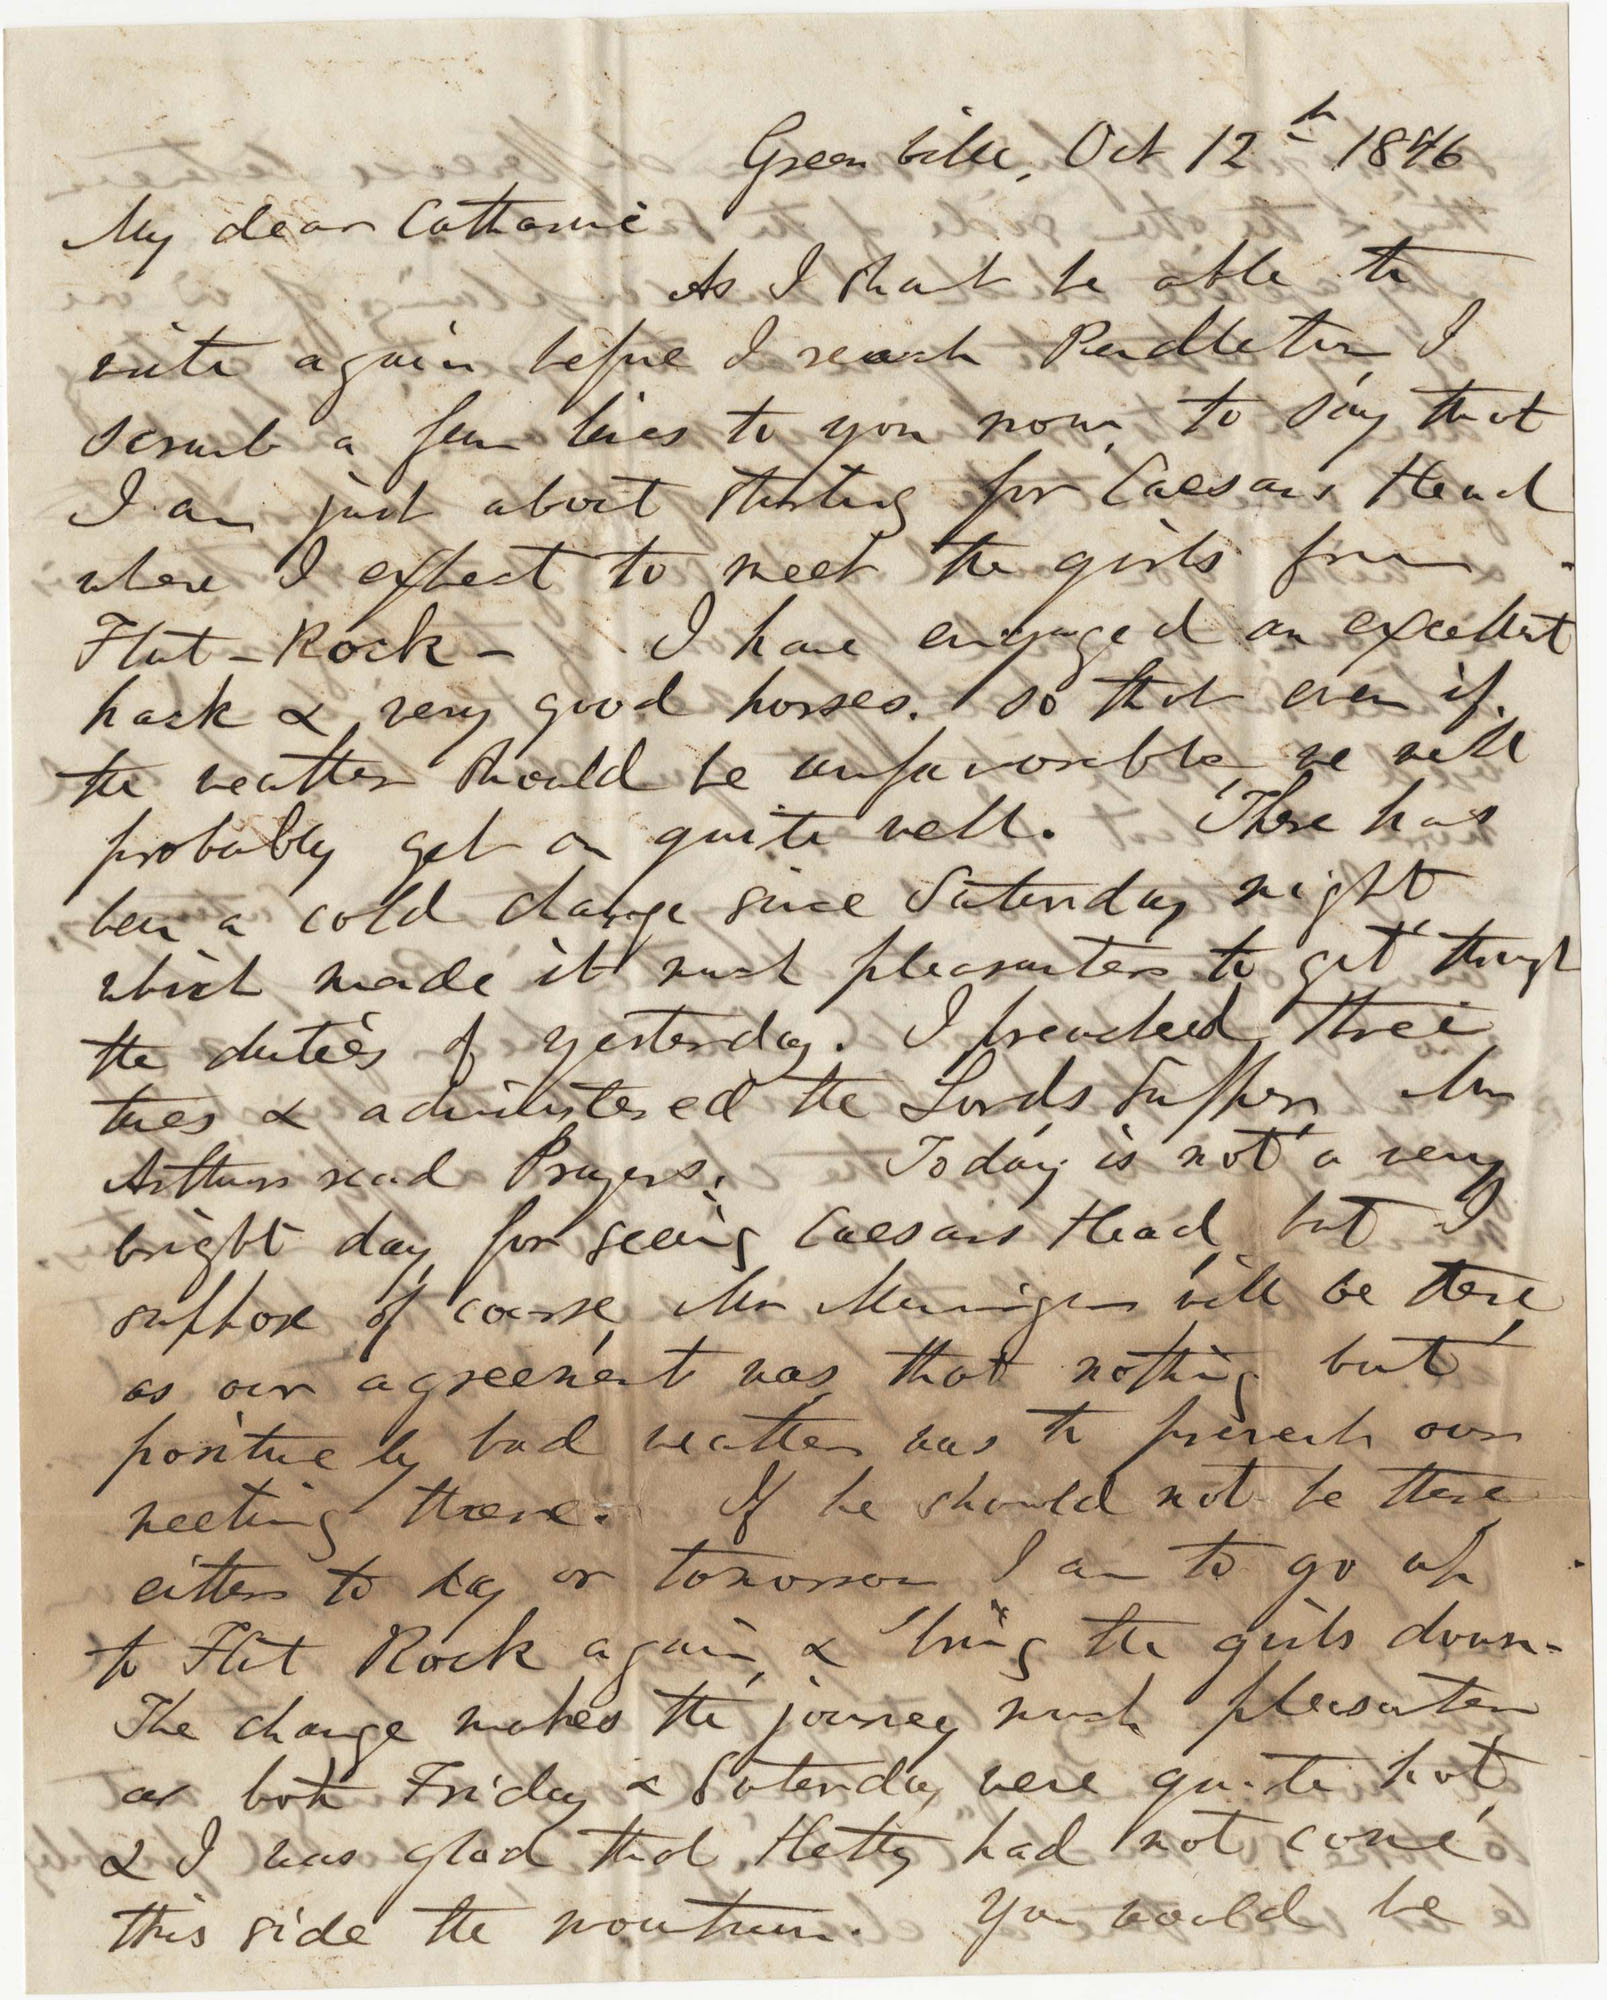 094.  William H. W. Barnwell to Catherine Barnwell -- October 12, 1846